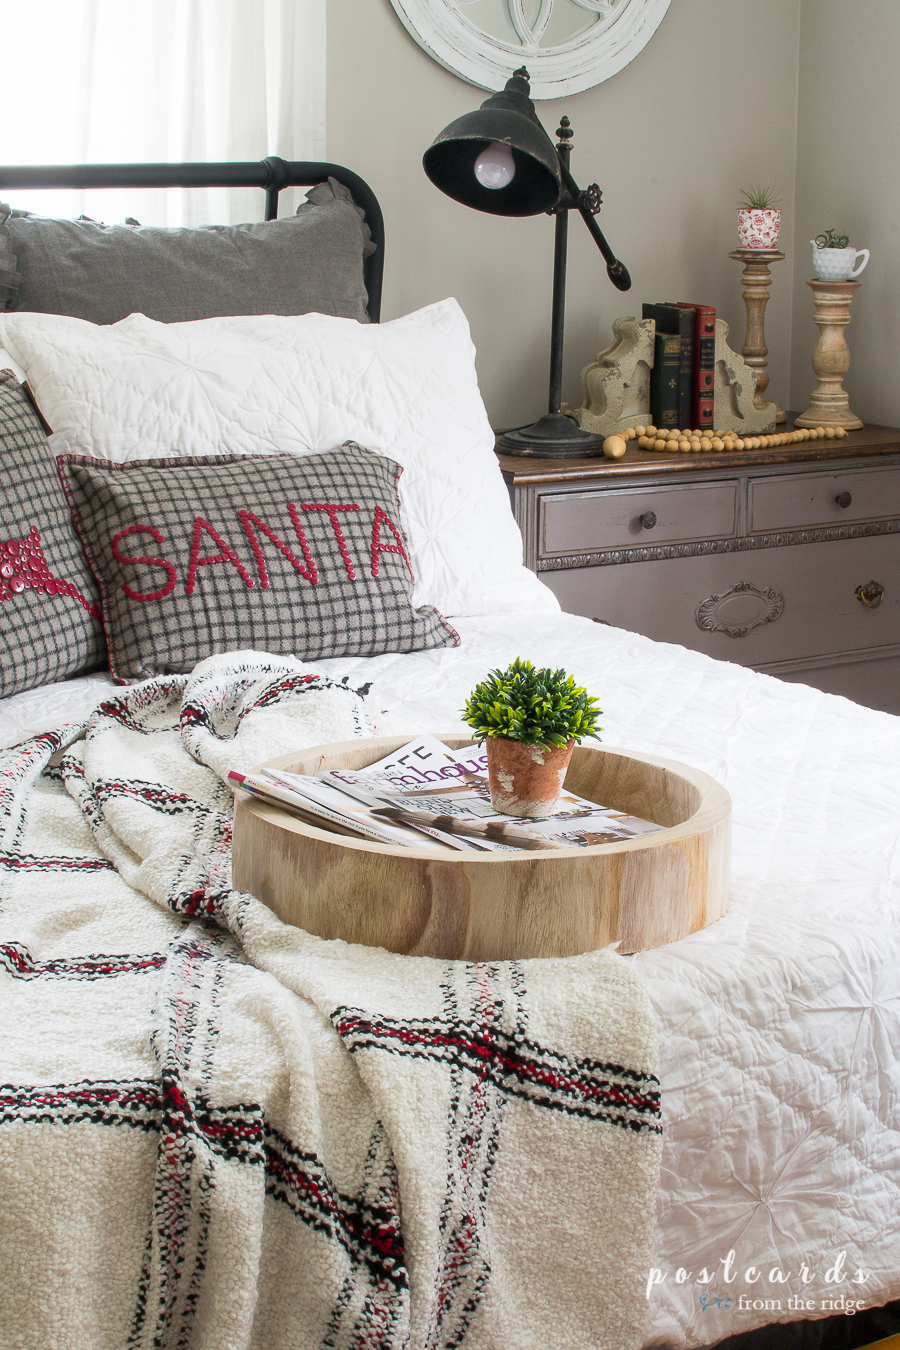 Modern Farmhouse Bedroom Makeover Reveal | Postcards from ...